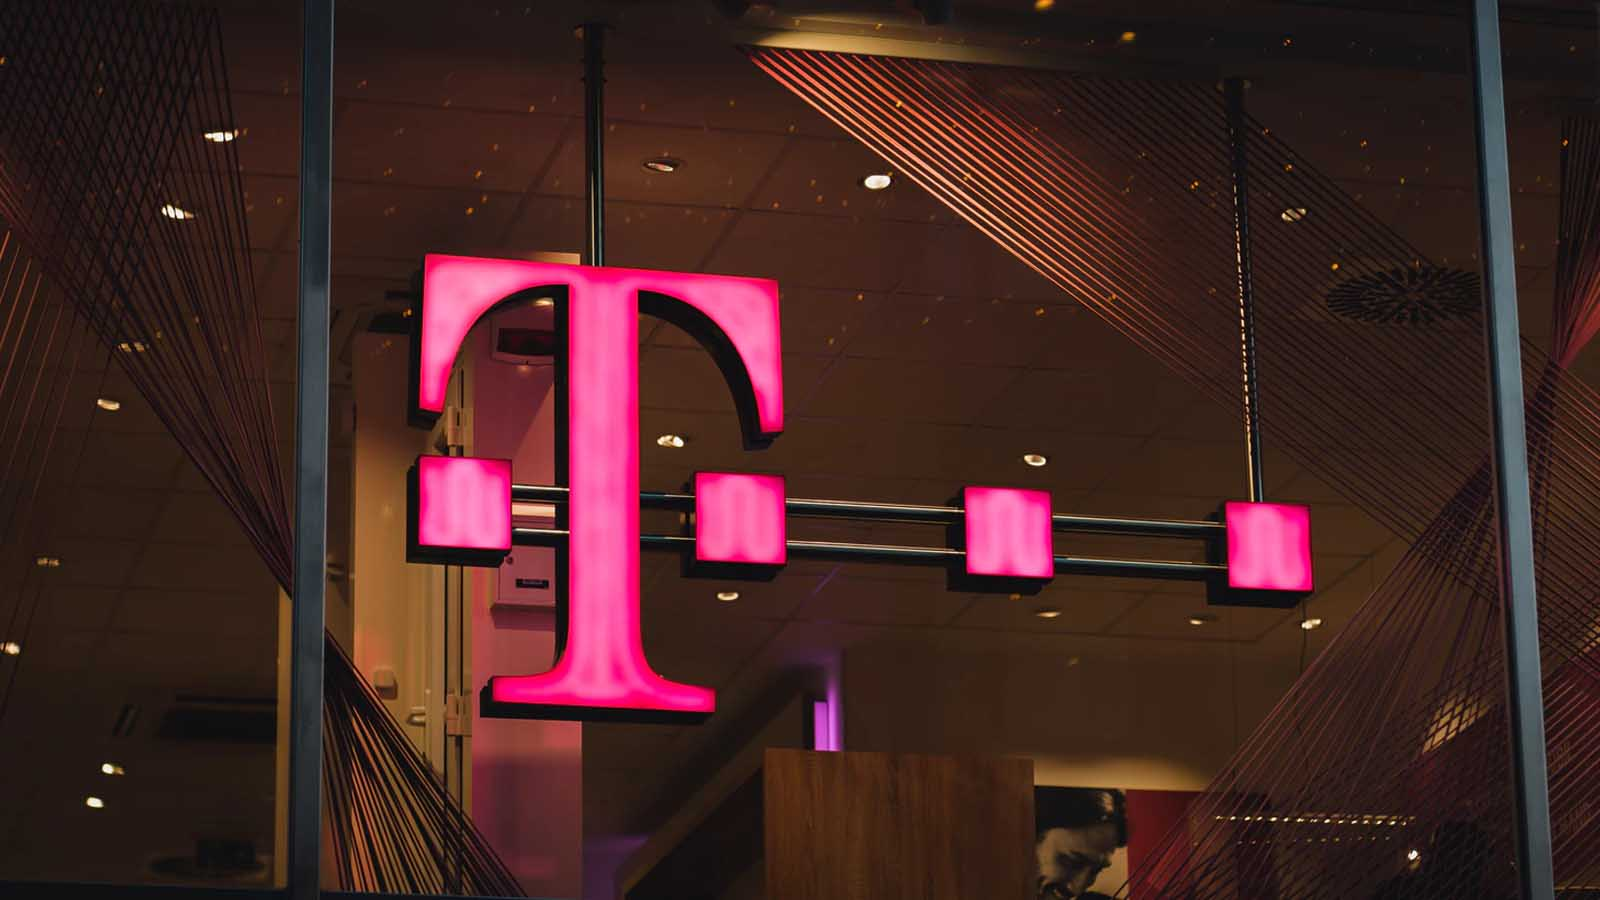 t-mobile logo on glass wall